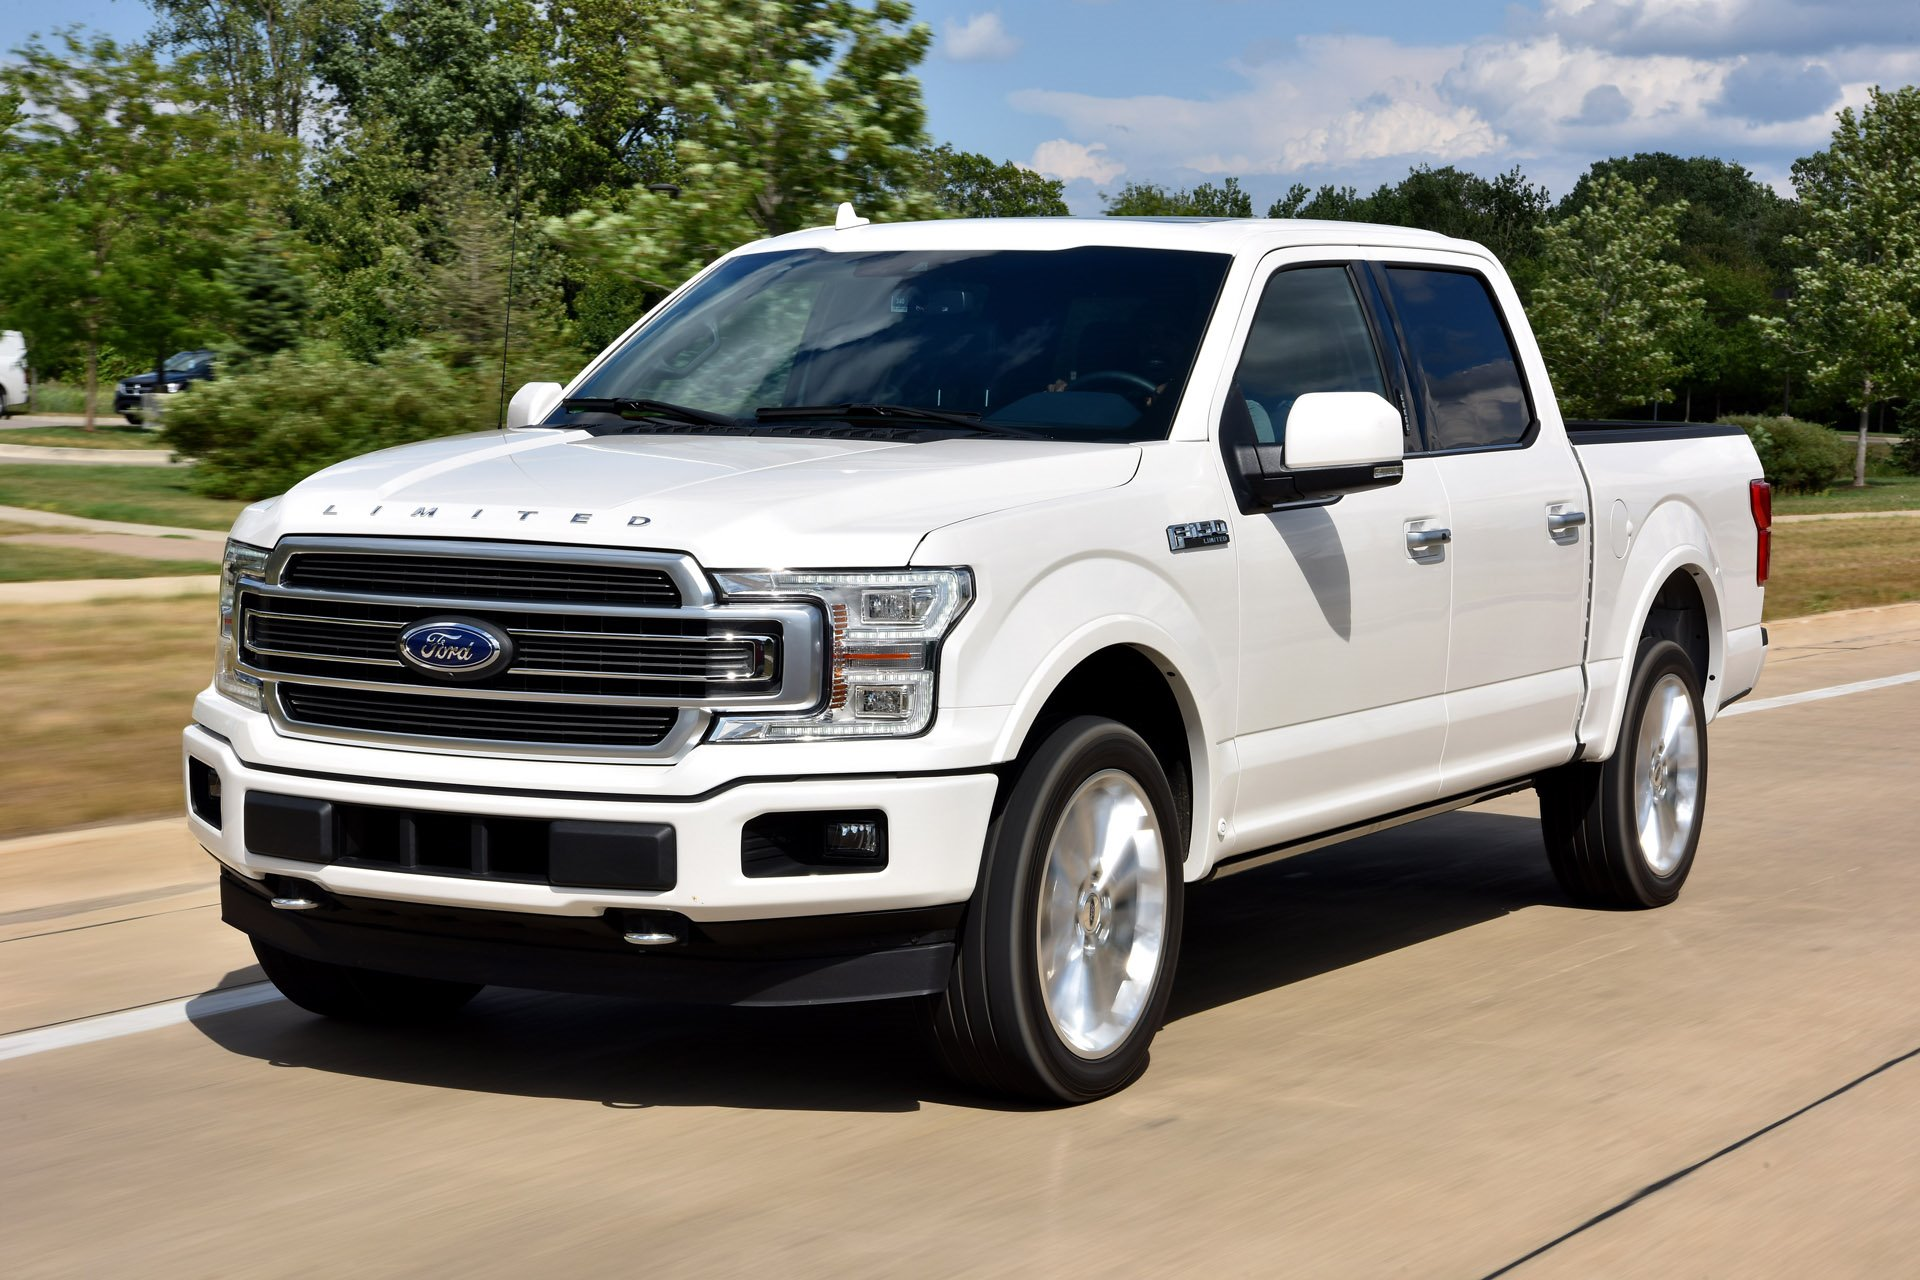 New 2019 Ford-F-150 Lariat F-150 Lariat for sale $47,985 at M and V Leasing in Brooklyn NY 11223 1